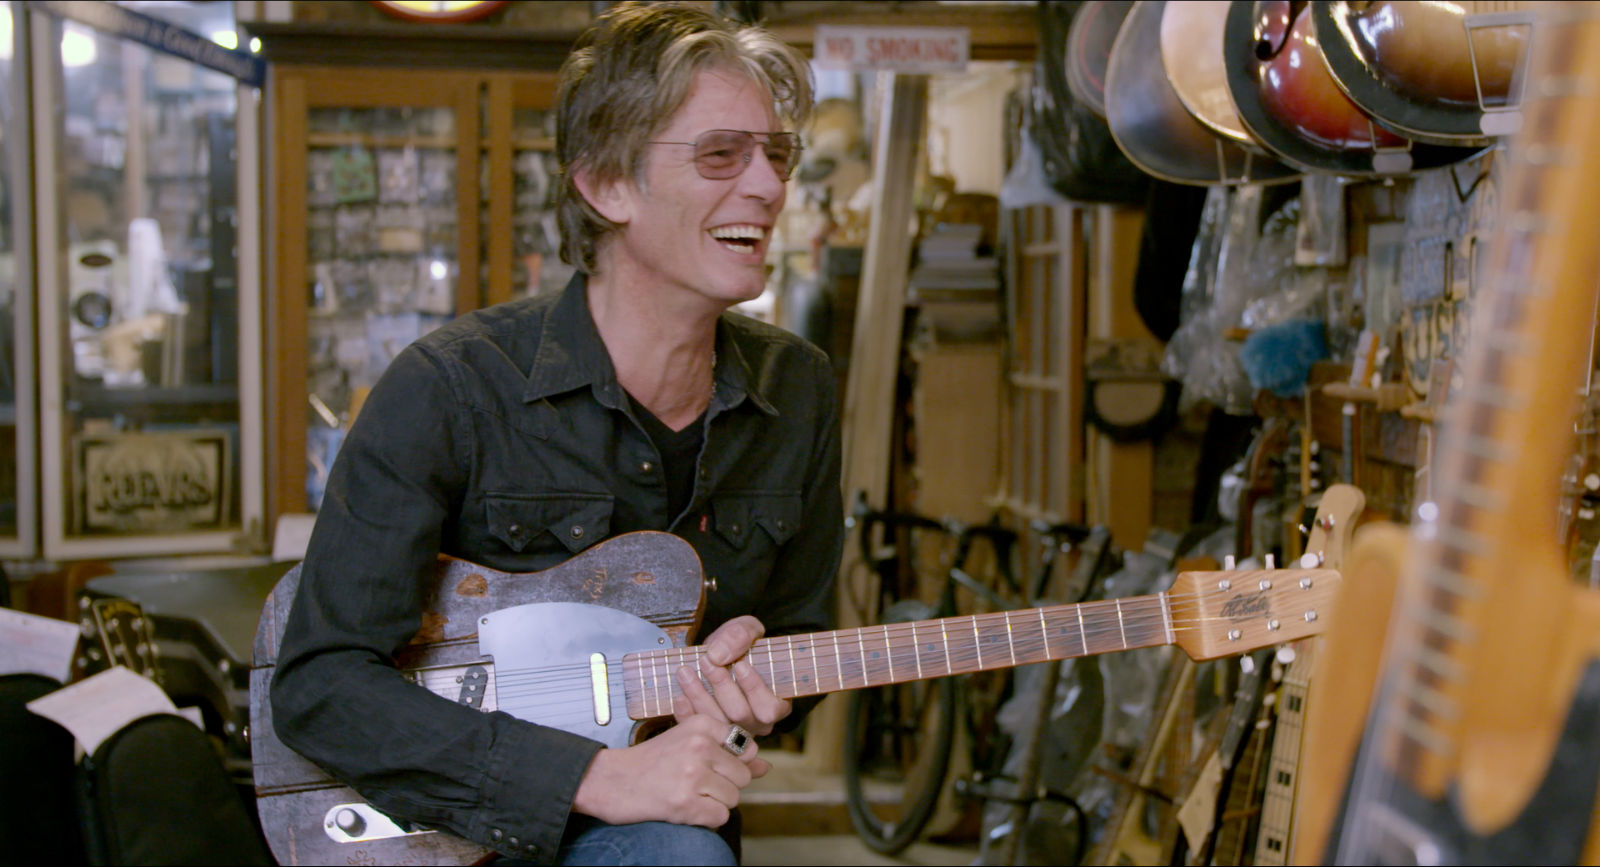 Charlie Sexton  in the doc Carmine Street Guitars.